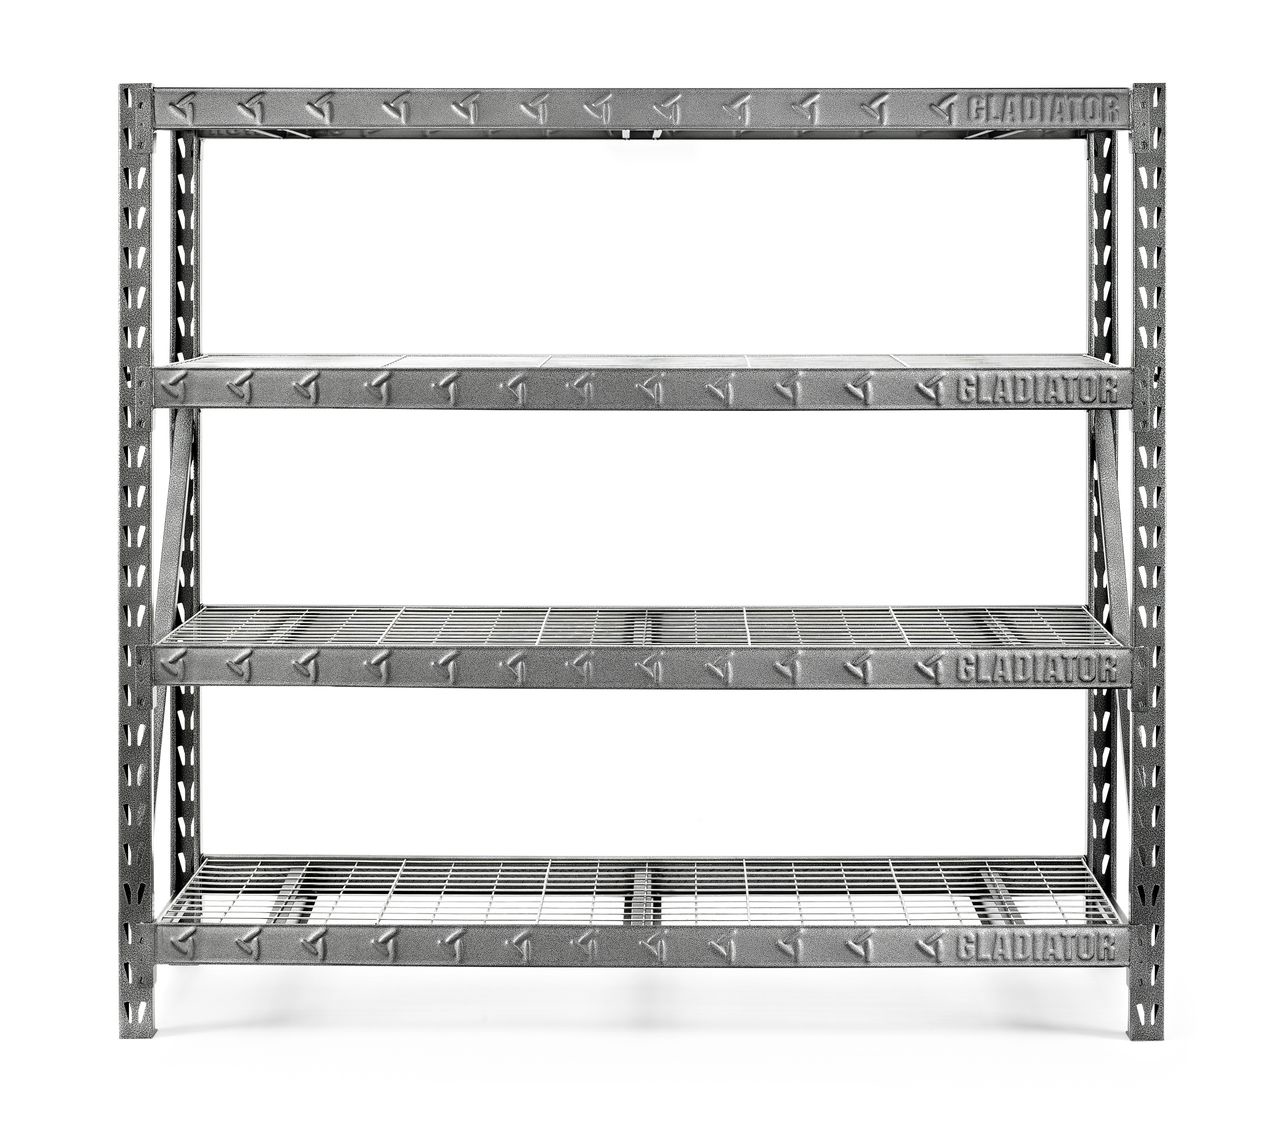 Gorilla Garage Racks Gladiator Premium Welded Steel Rack Shelving Unit 77